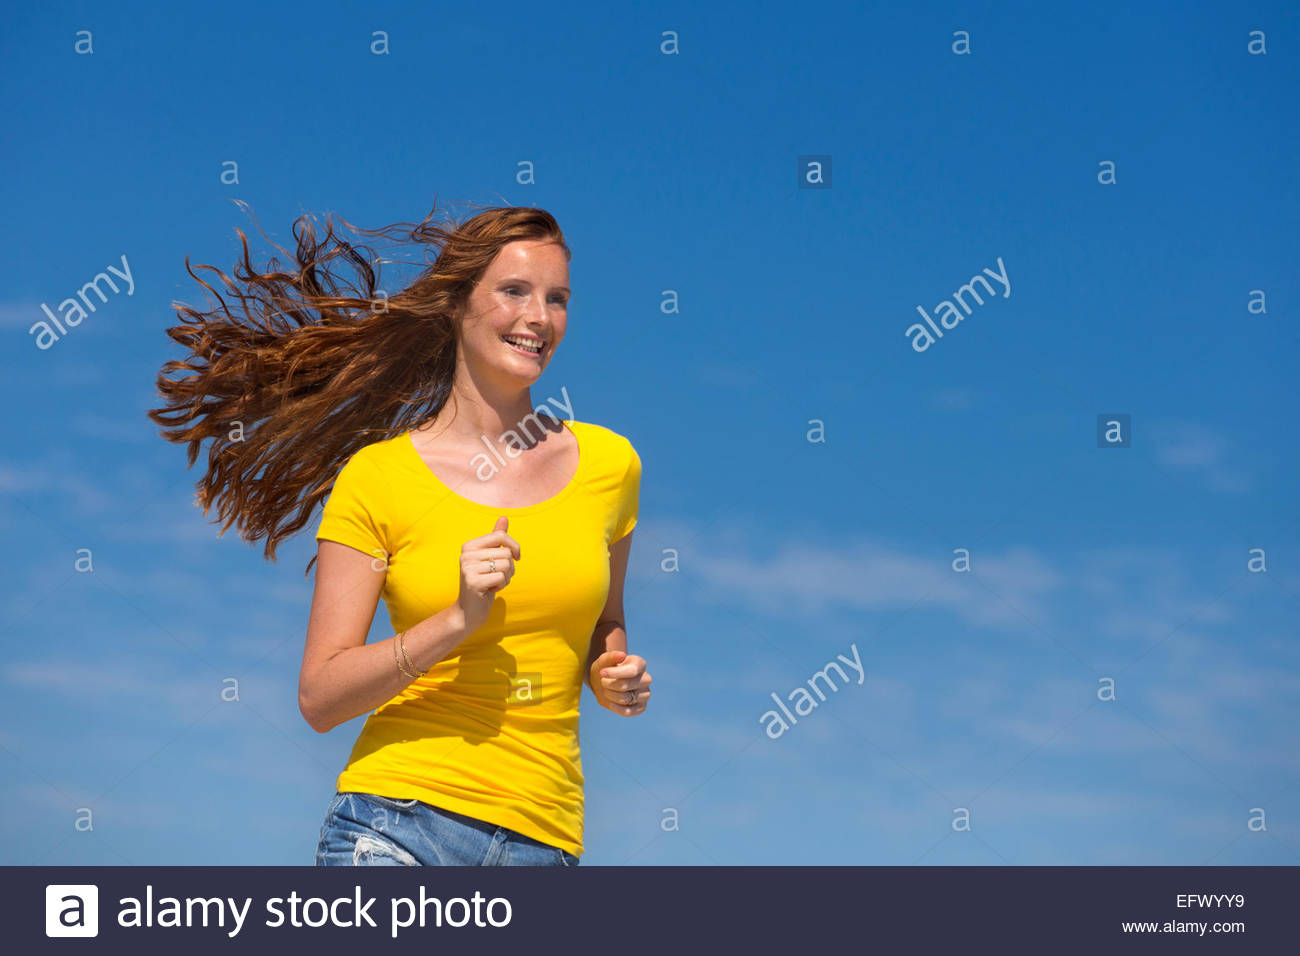 Smiling woman running with blue sky background - Stock Image